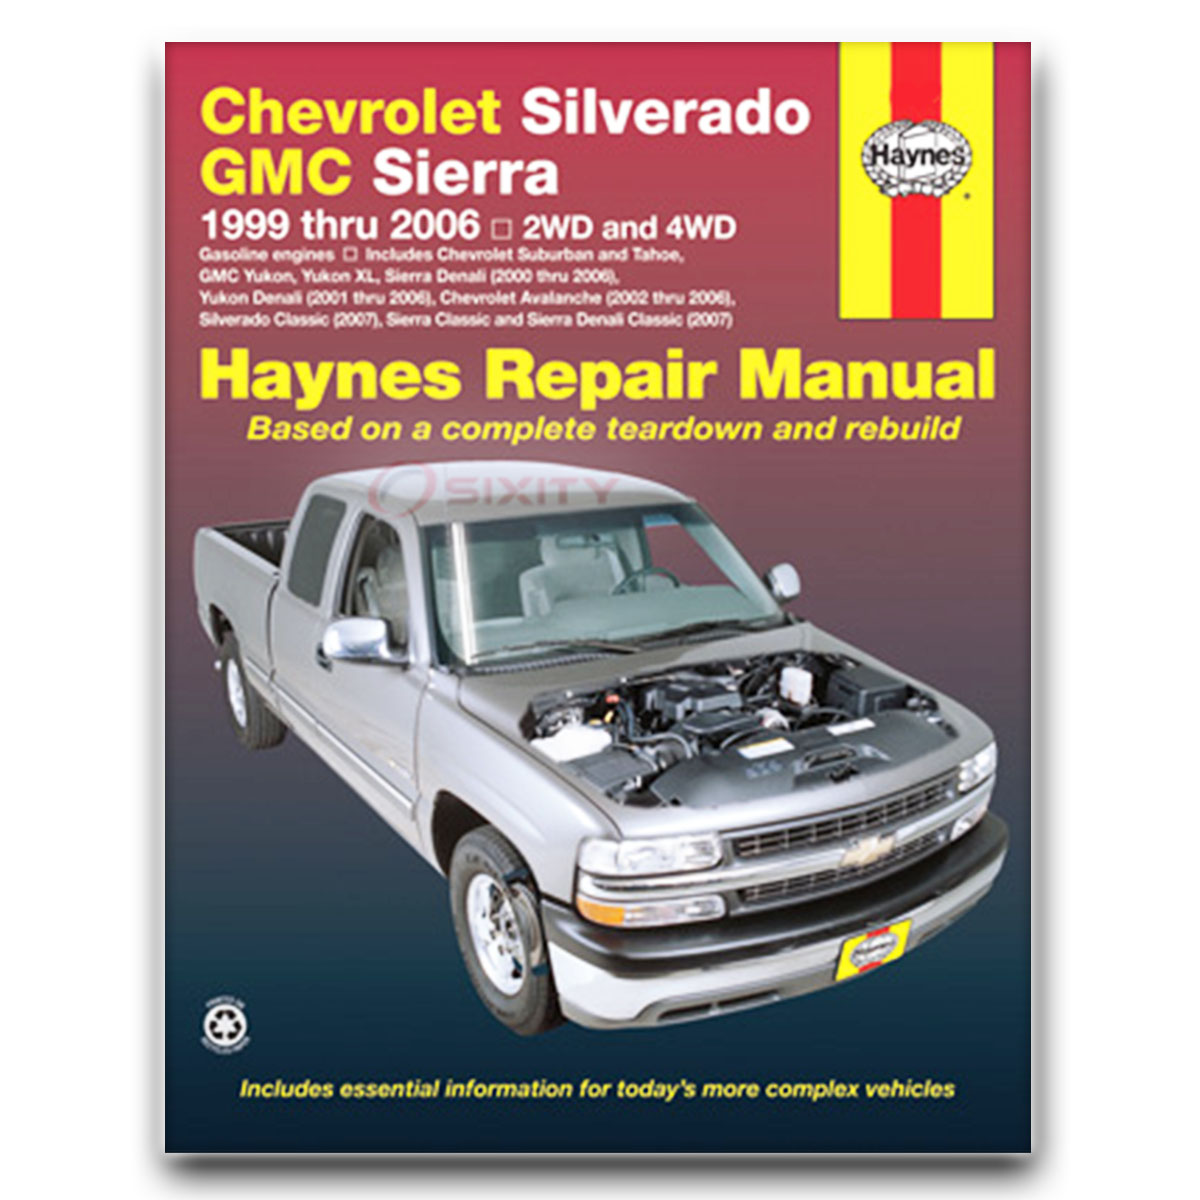 chevy suburban 1500 haynes repair manual base ls z71 lt ltz shop rh ebay com 1999 chevrolet silverado 1500 repair manual pdf 1999 chevrolet silverado 1500 repair manual pdf